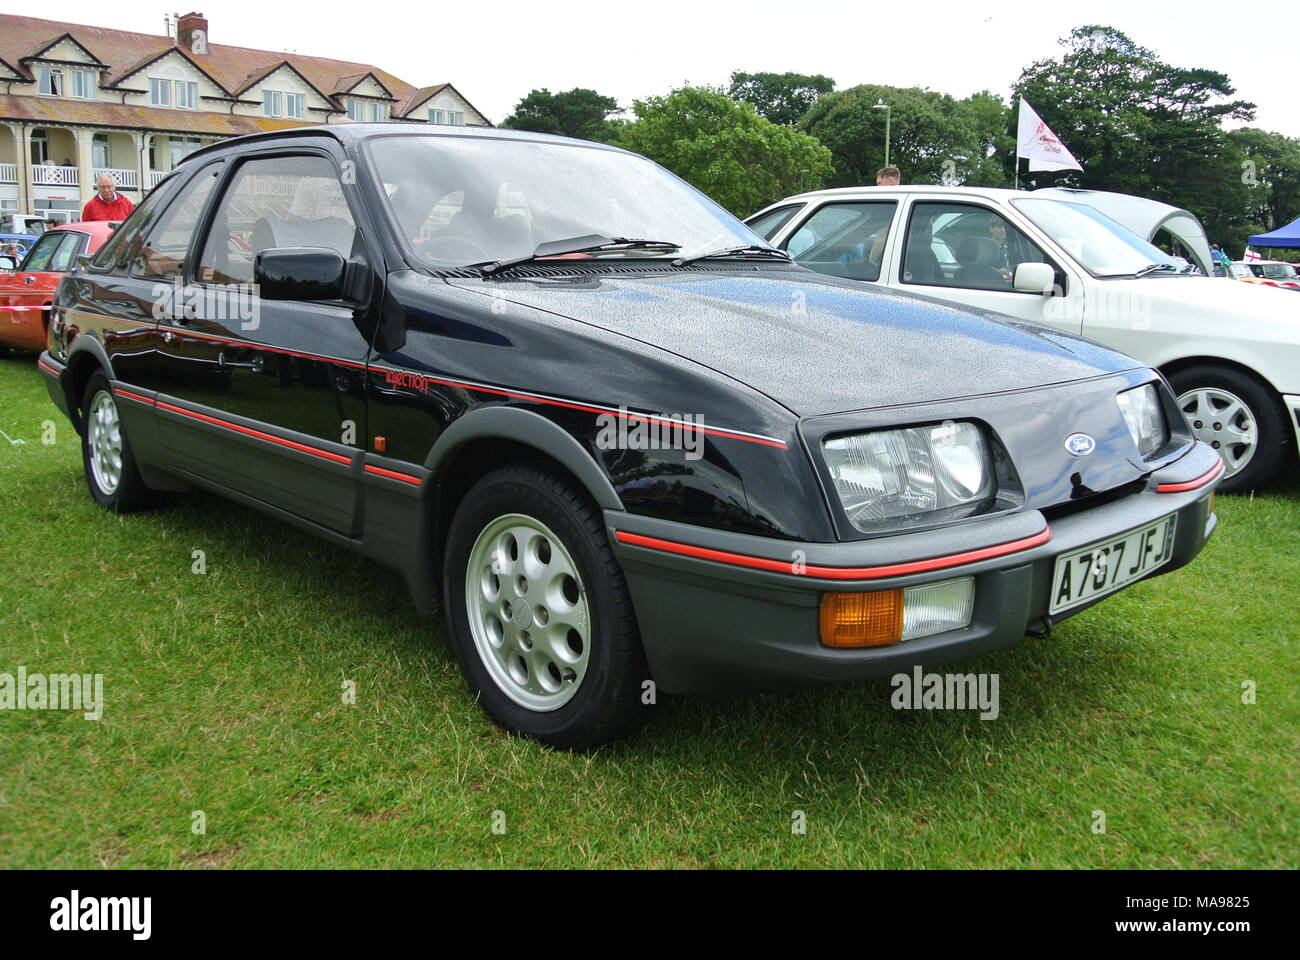 Ford Sierra XR4i parked on display at English Riviera classic car ...